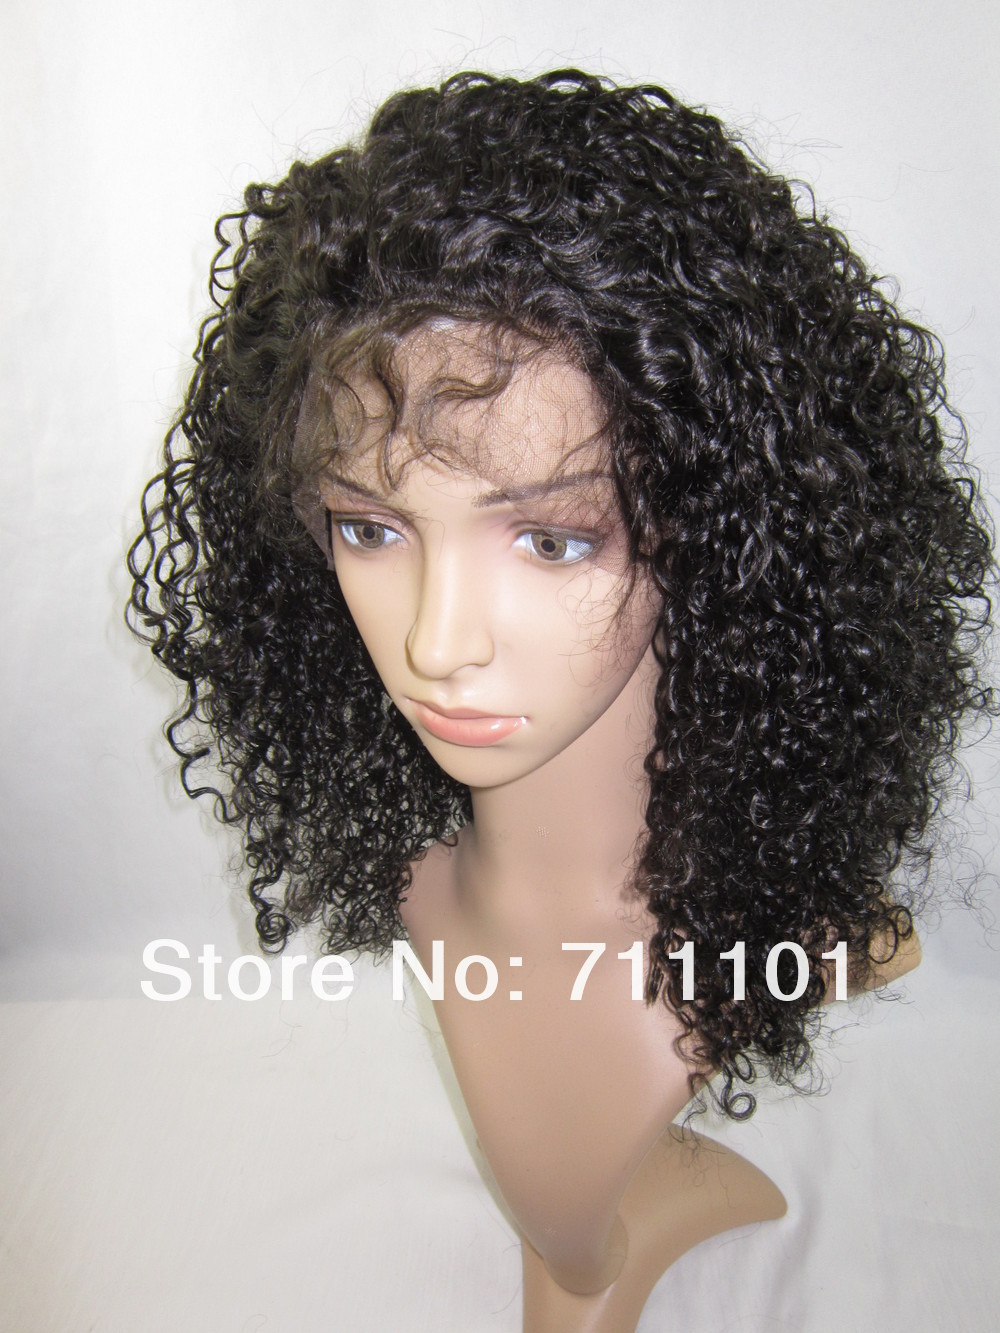 Wholesale Afro Wigs 63